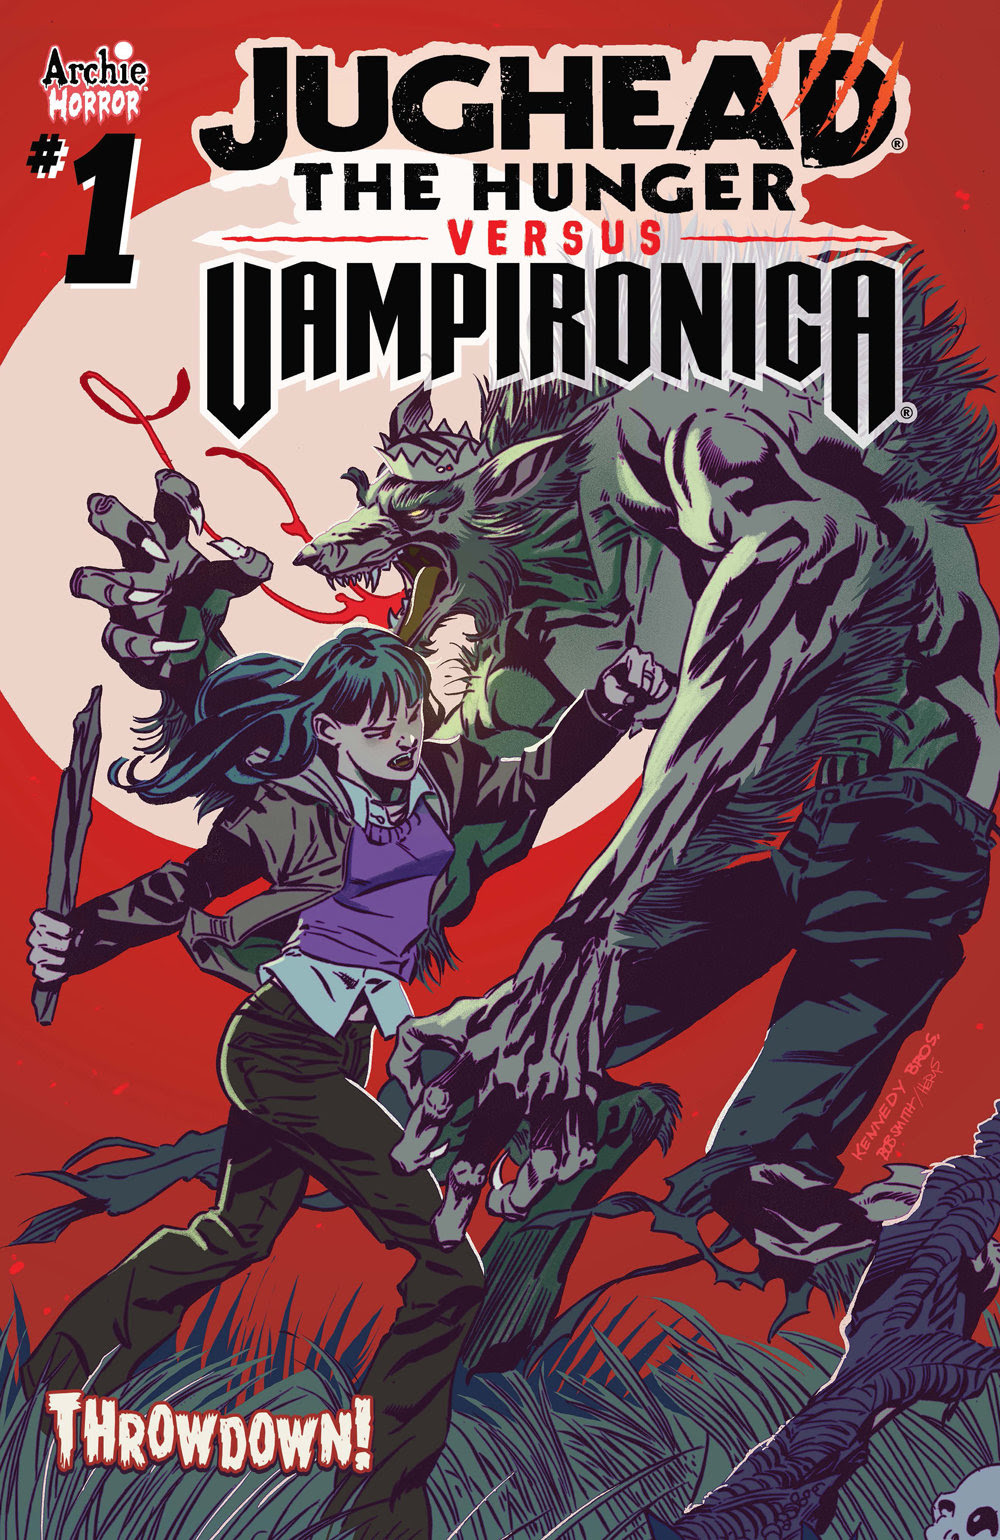 JUGHEAD: THE HUNGER VS. VAMPIRONICA #1: CVR A Kennedy